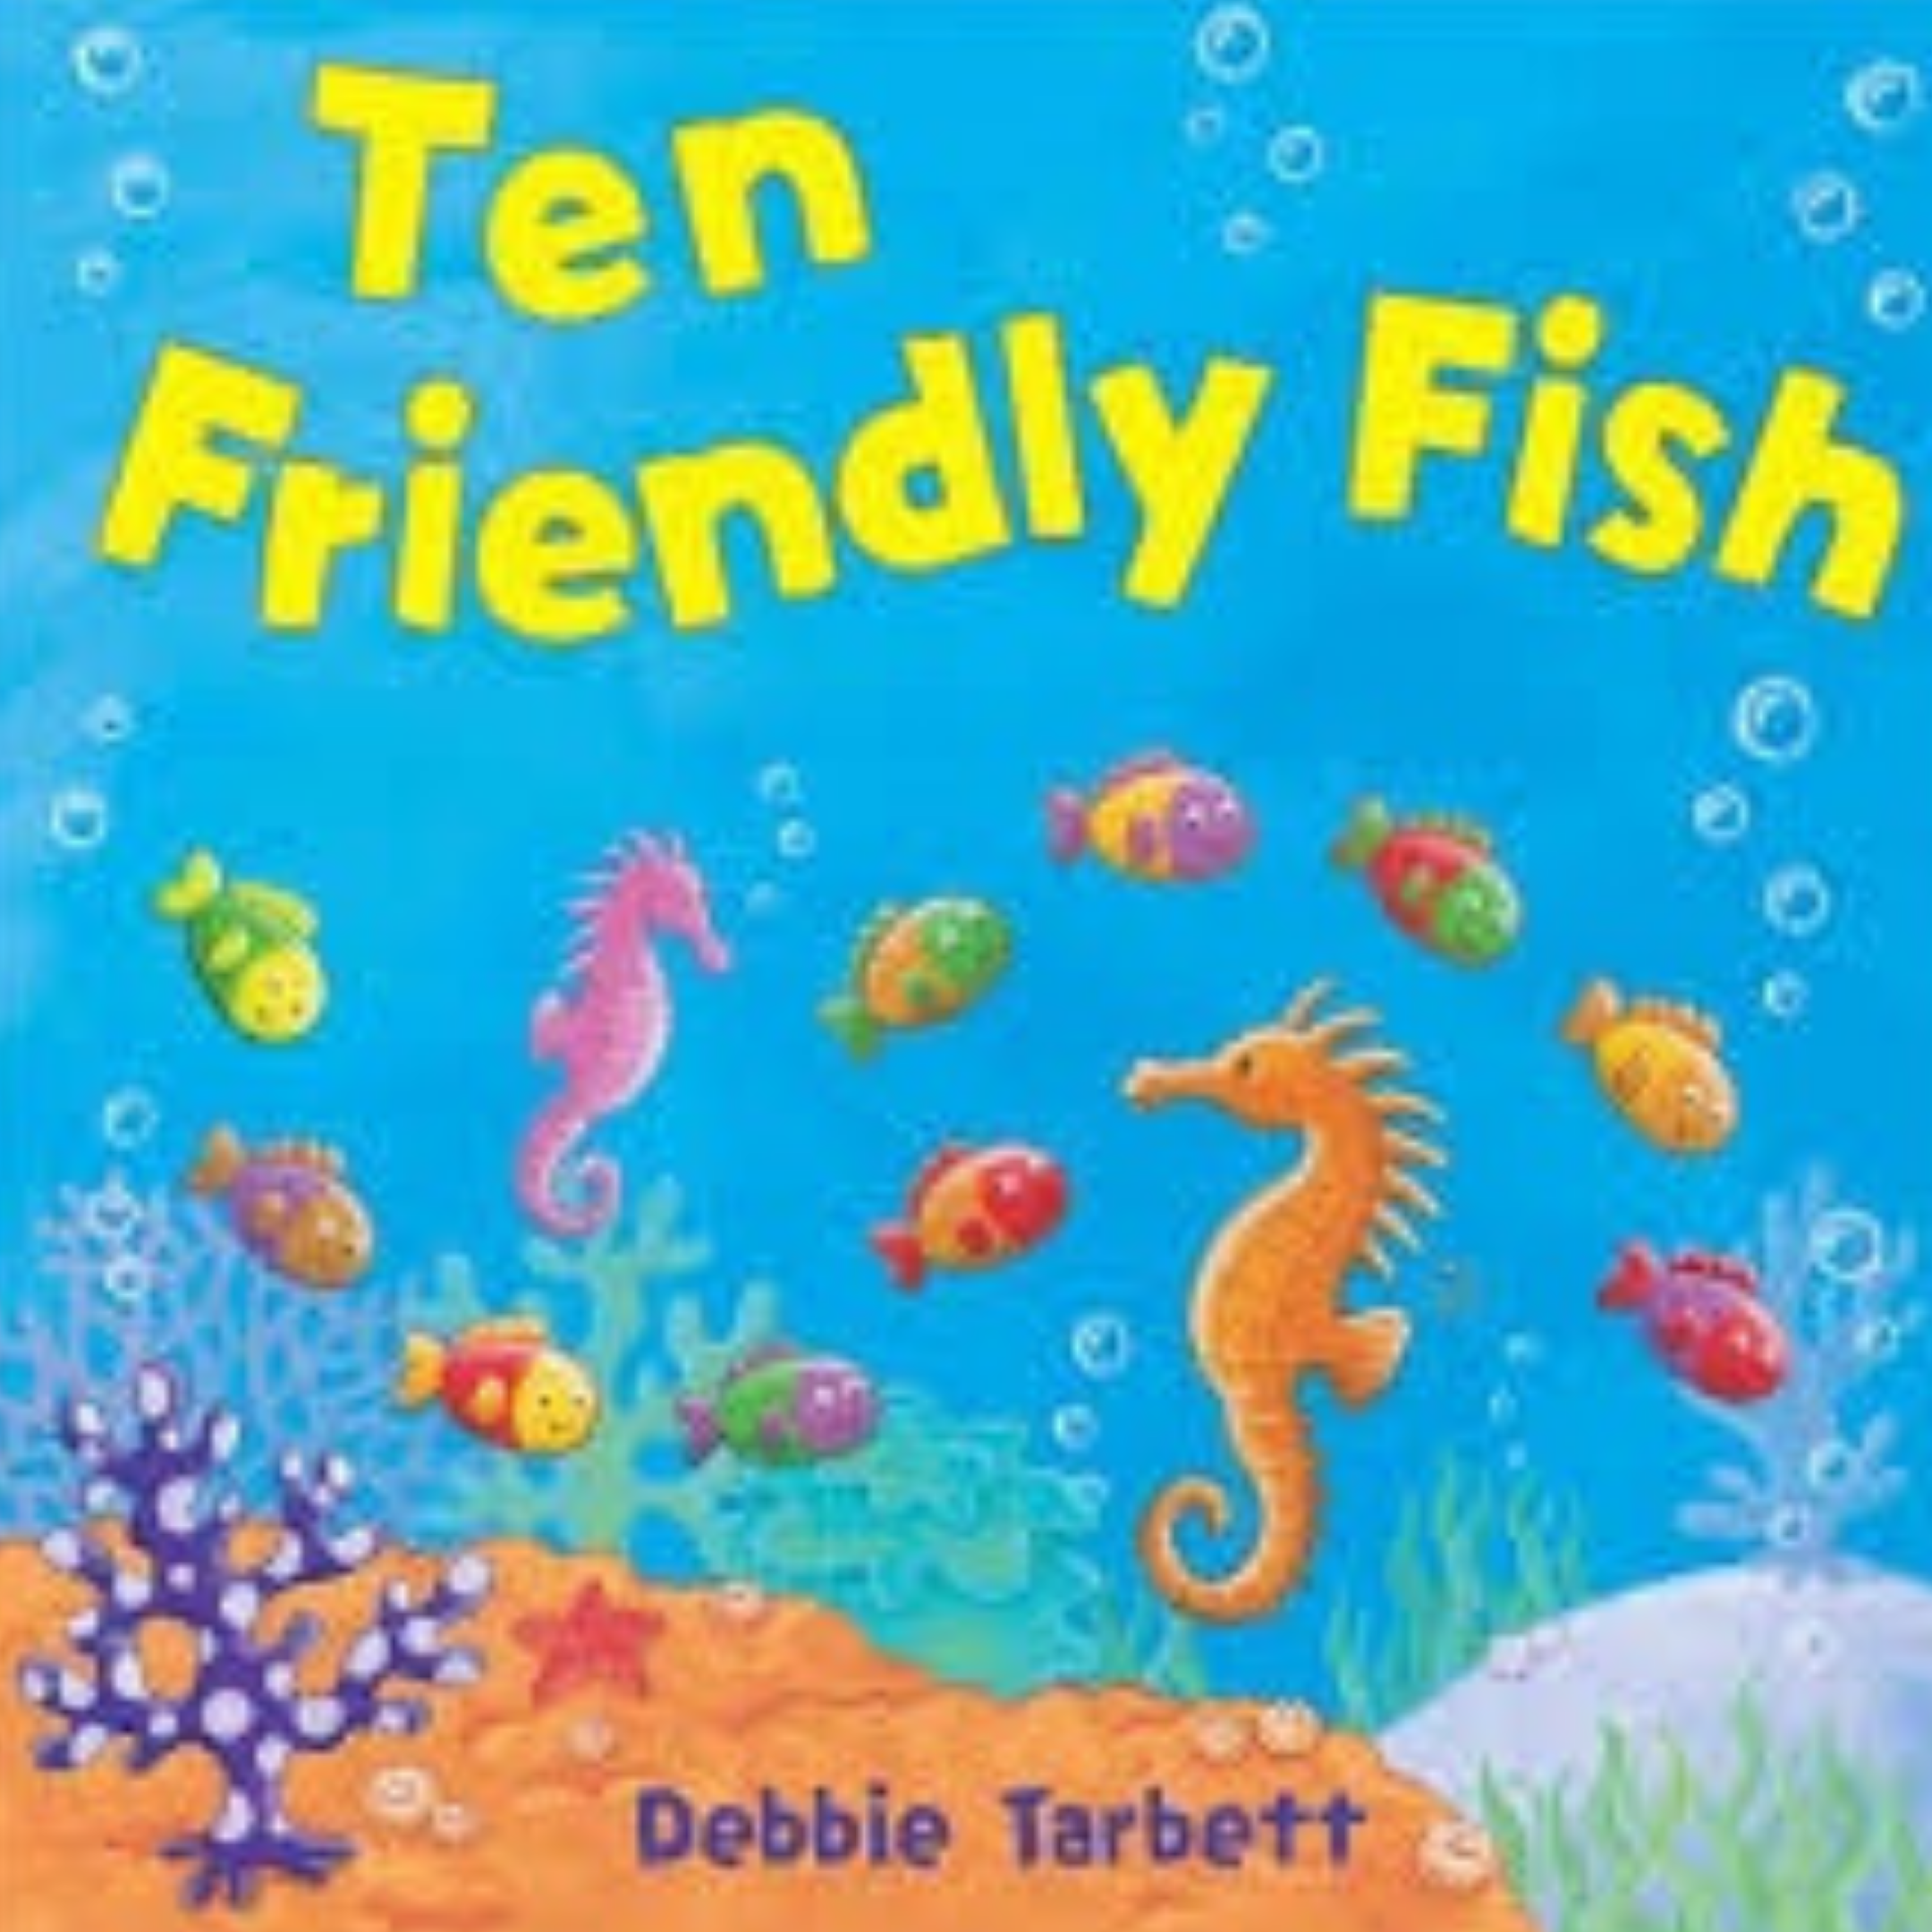 10 Friendly Fish picture for the 2020 Children's Books Gift Guide.